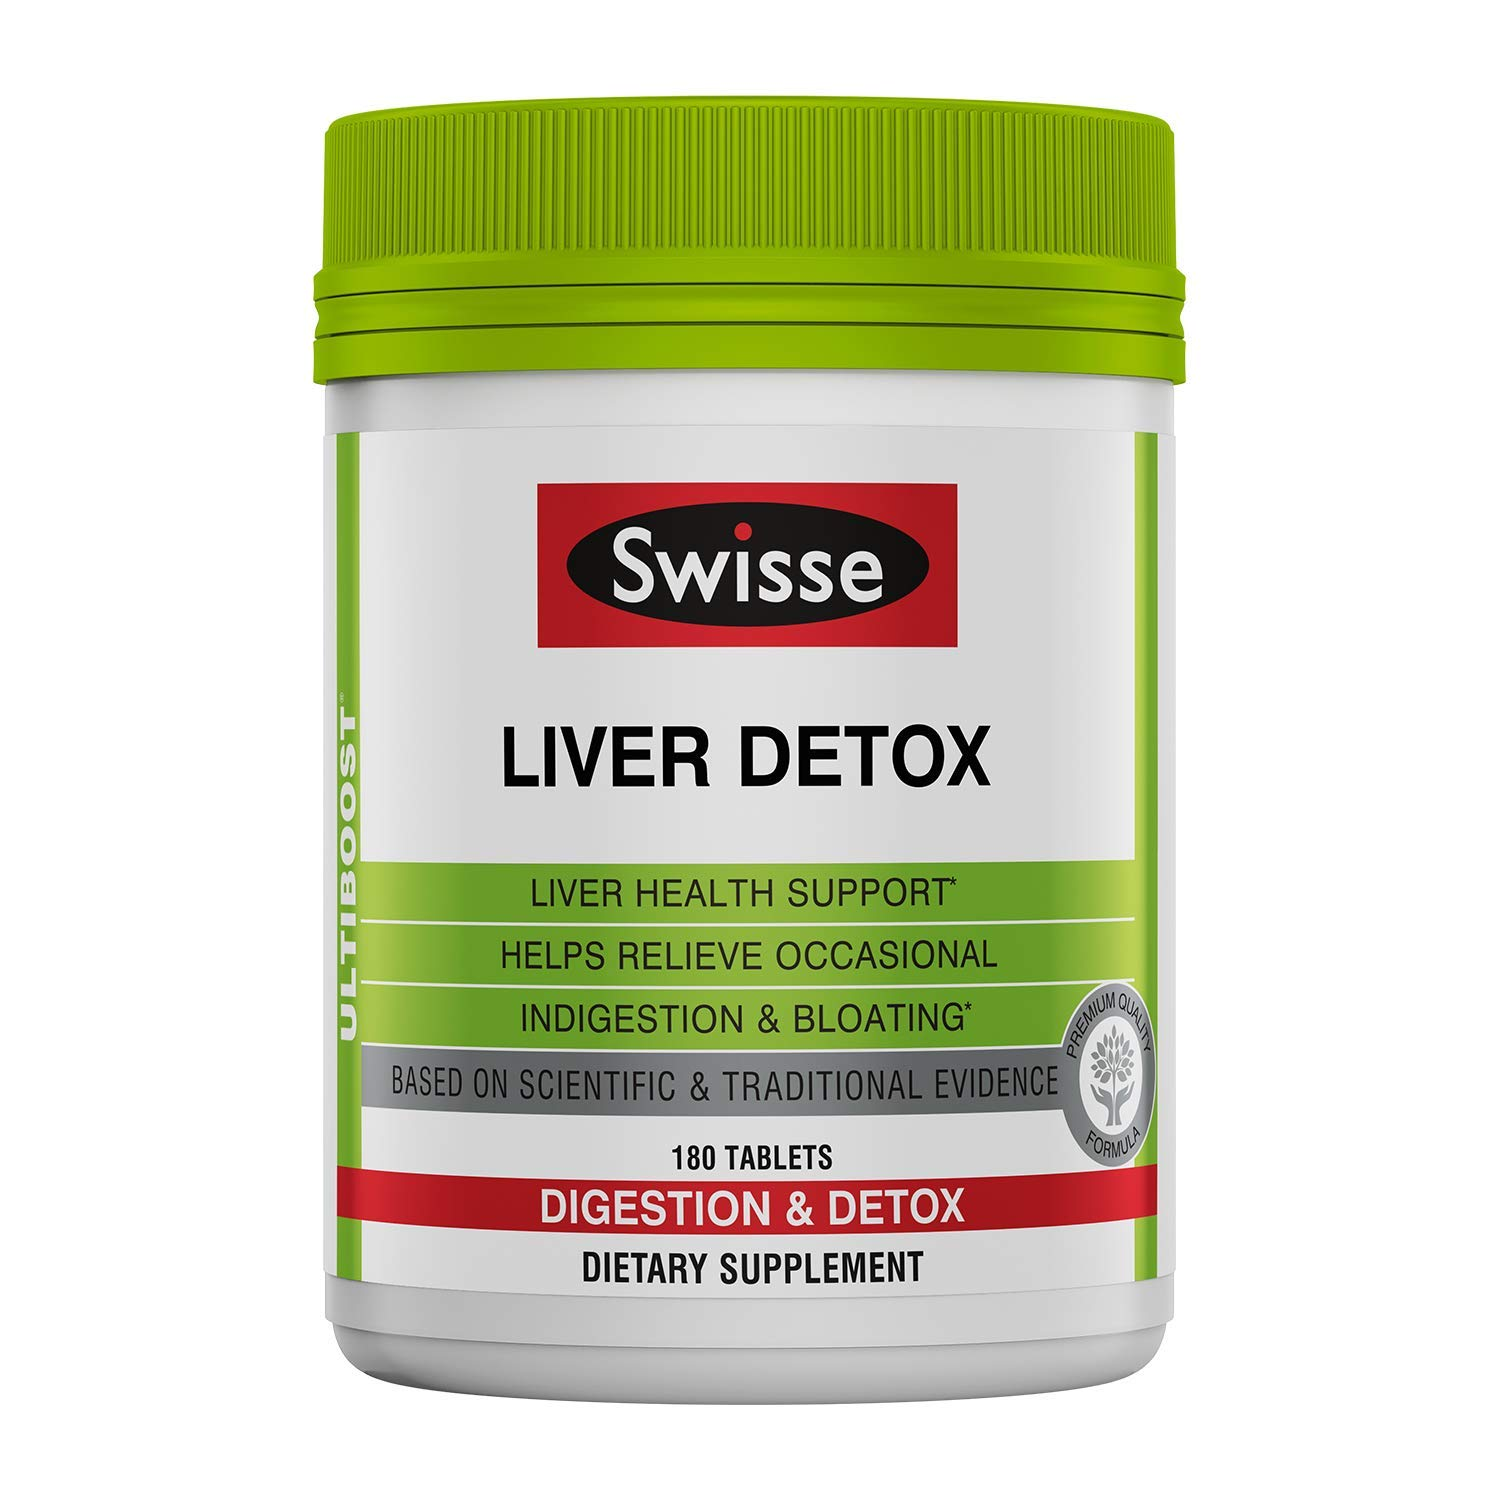 Swisse Ultiboost Liver Detox | Supports Liver Health & Function | Provides Relief for Indigestion & Bloating | Milk Thistle, Artichoke & Tumeric | 180 Tablets